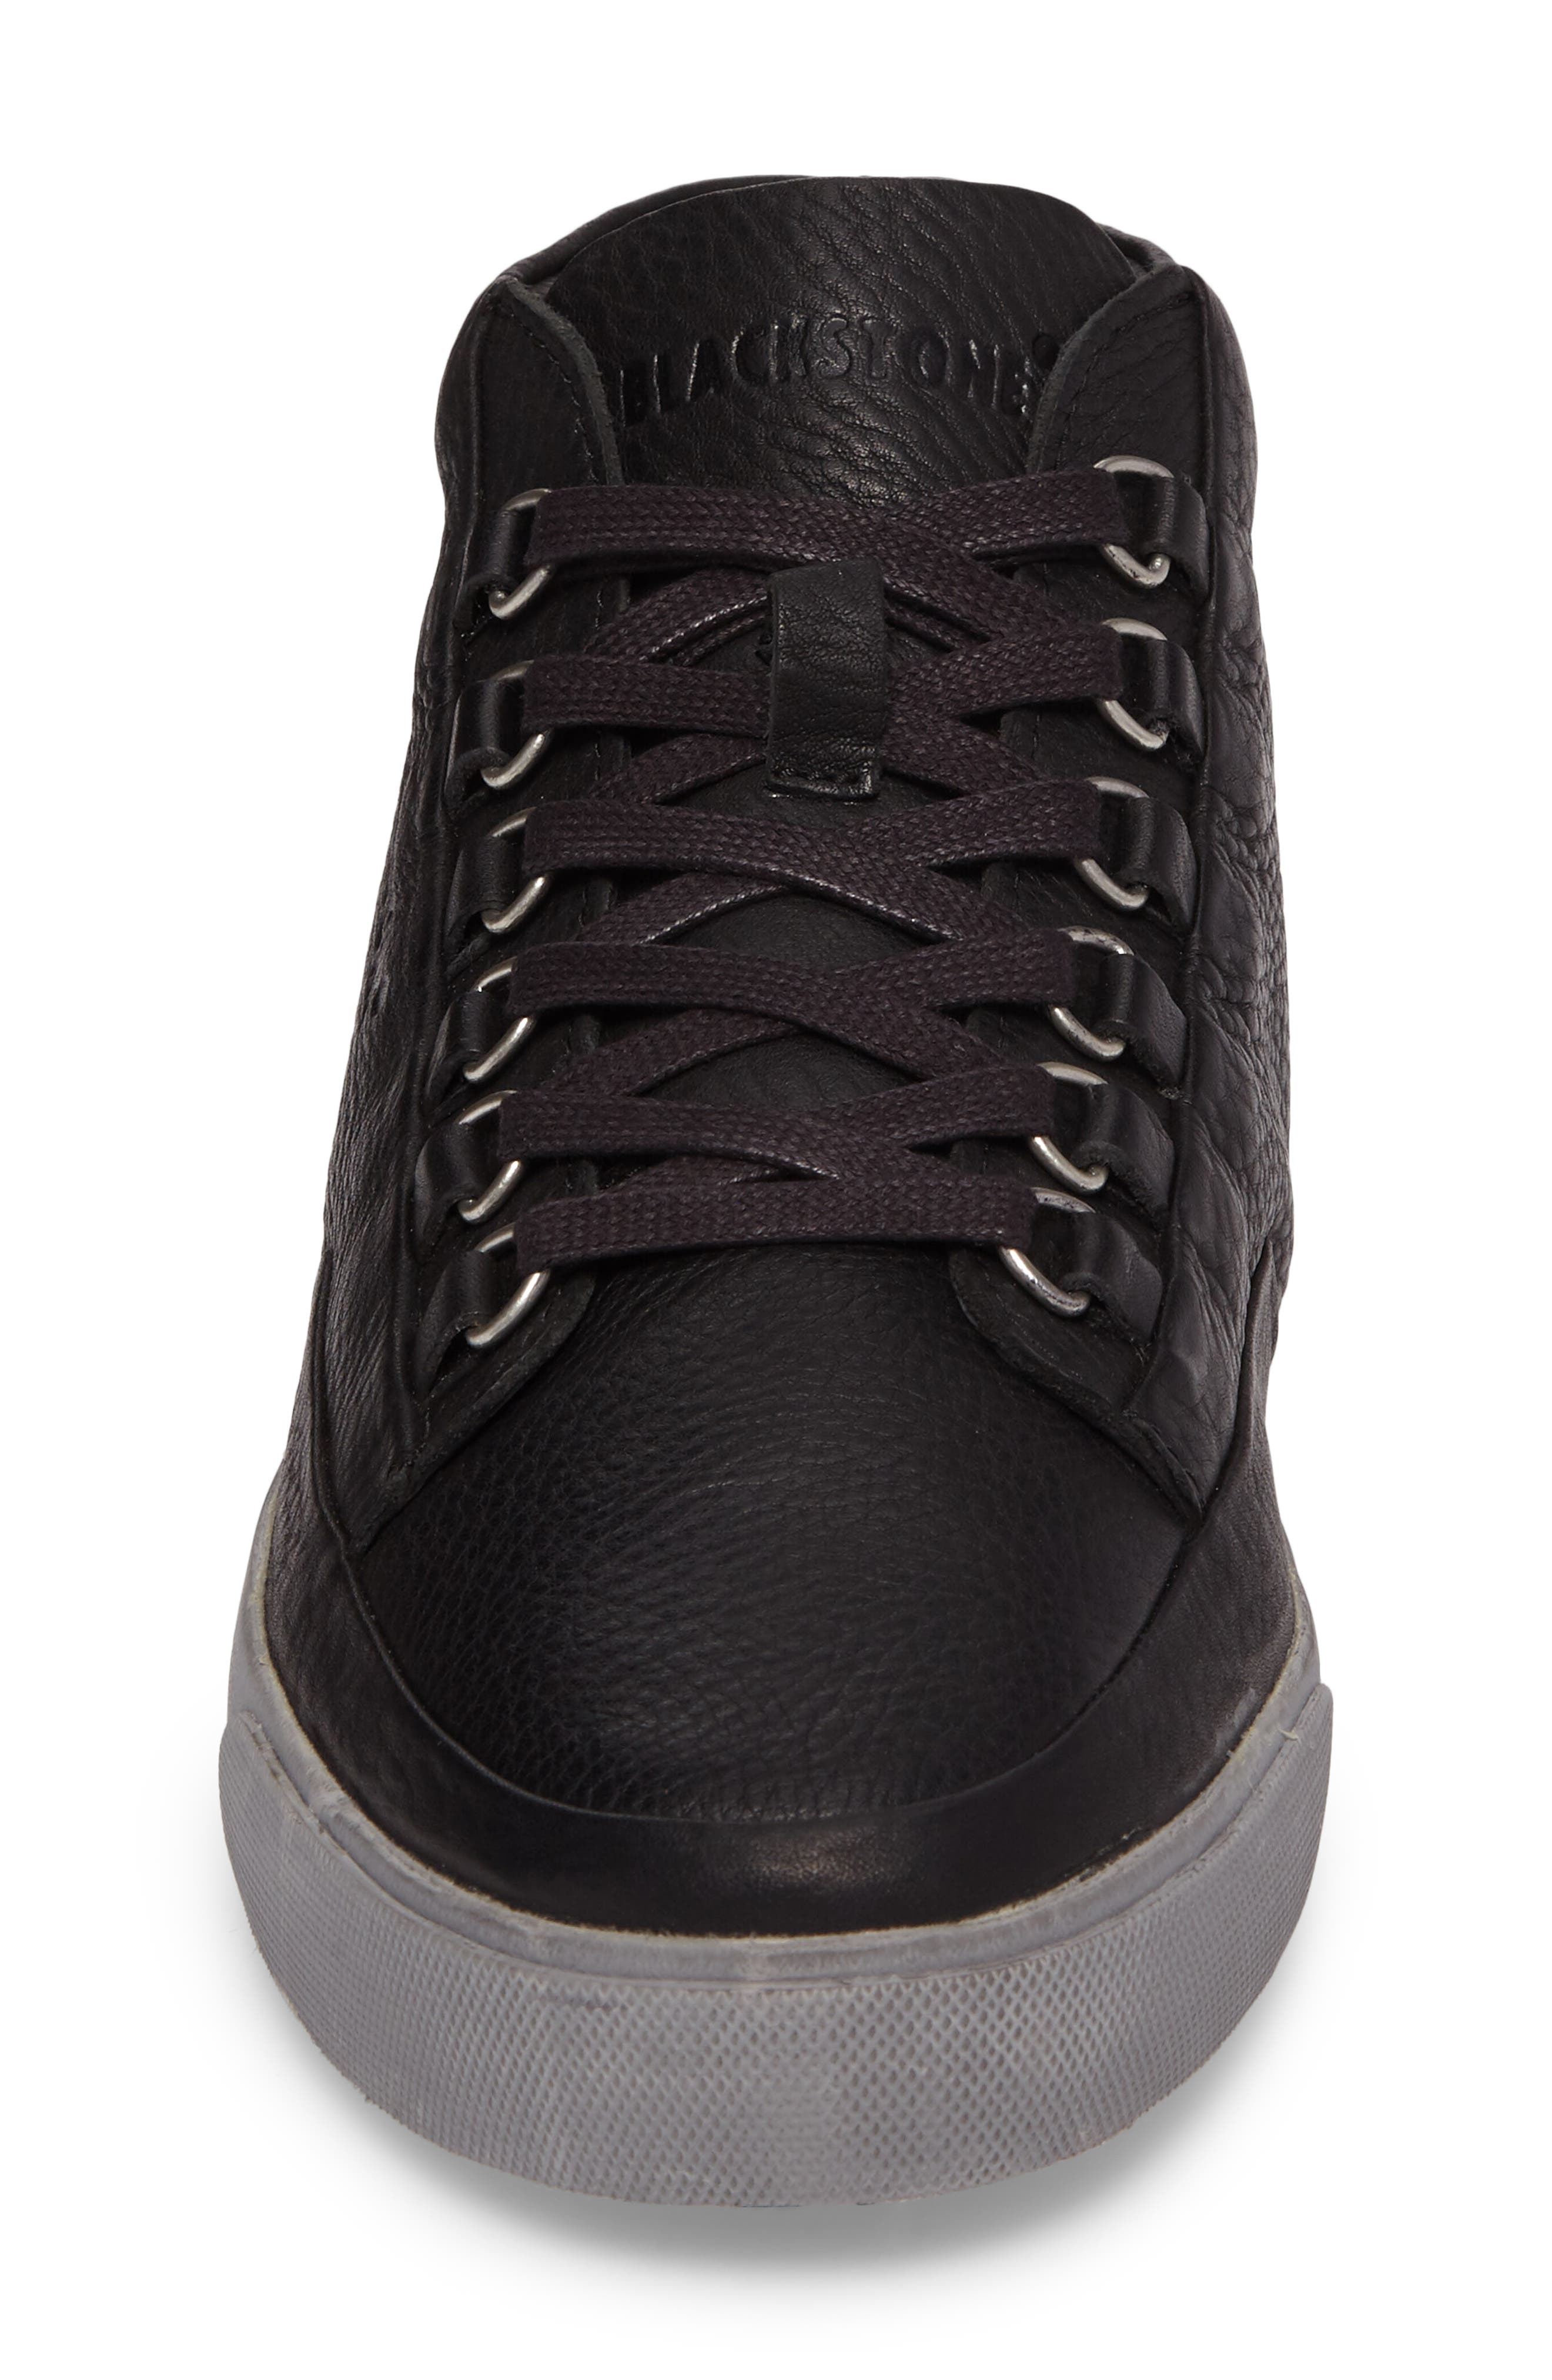 KM 02 Sneaker with Genuine Shearling Lining,                             Alternate thumbnail 4, color,                             Black Leather